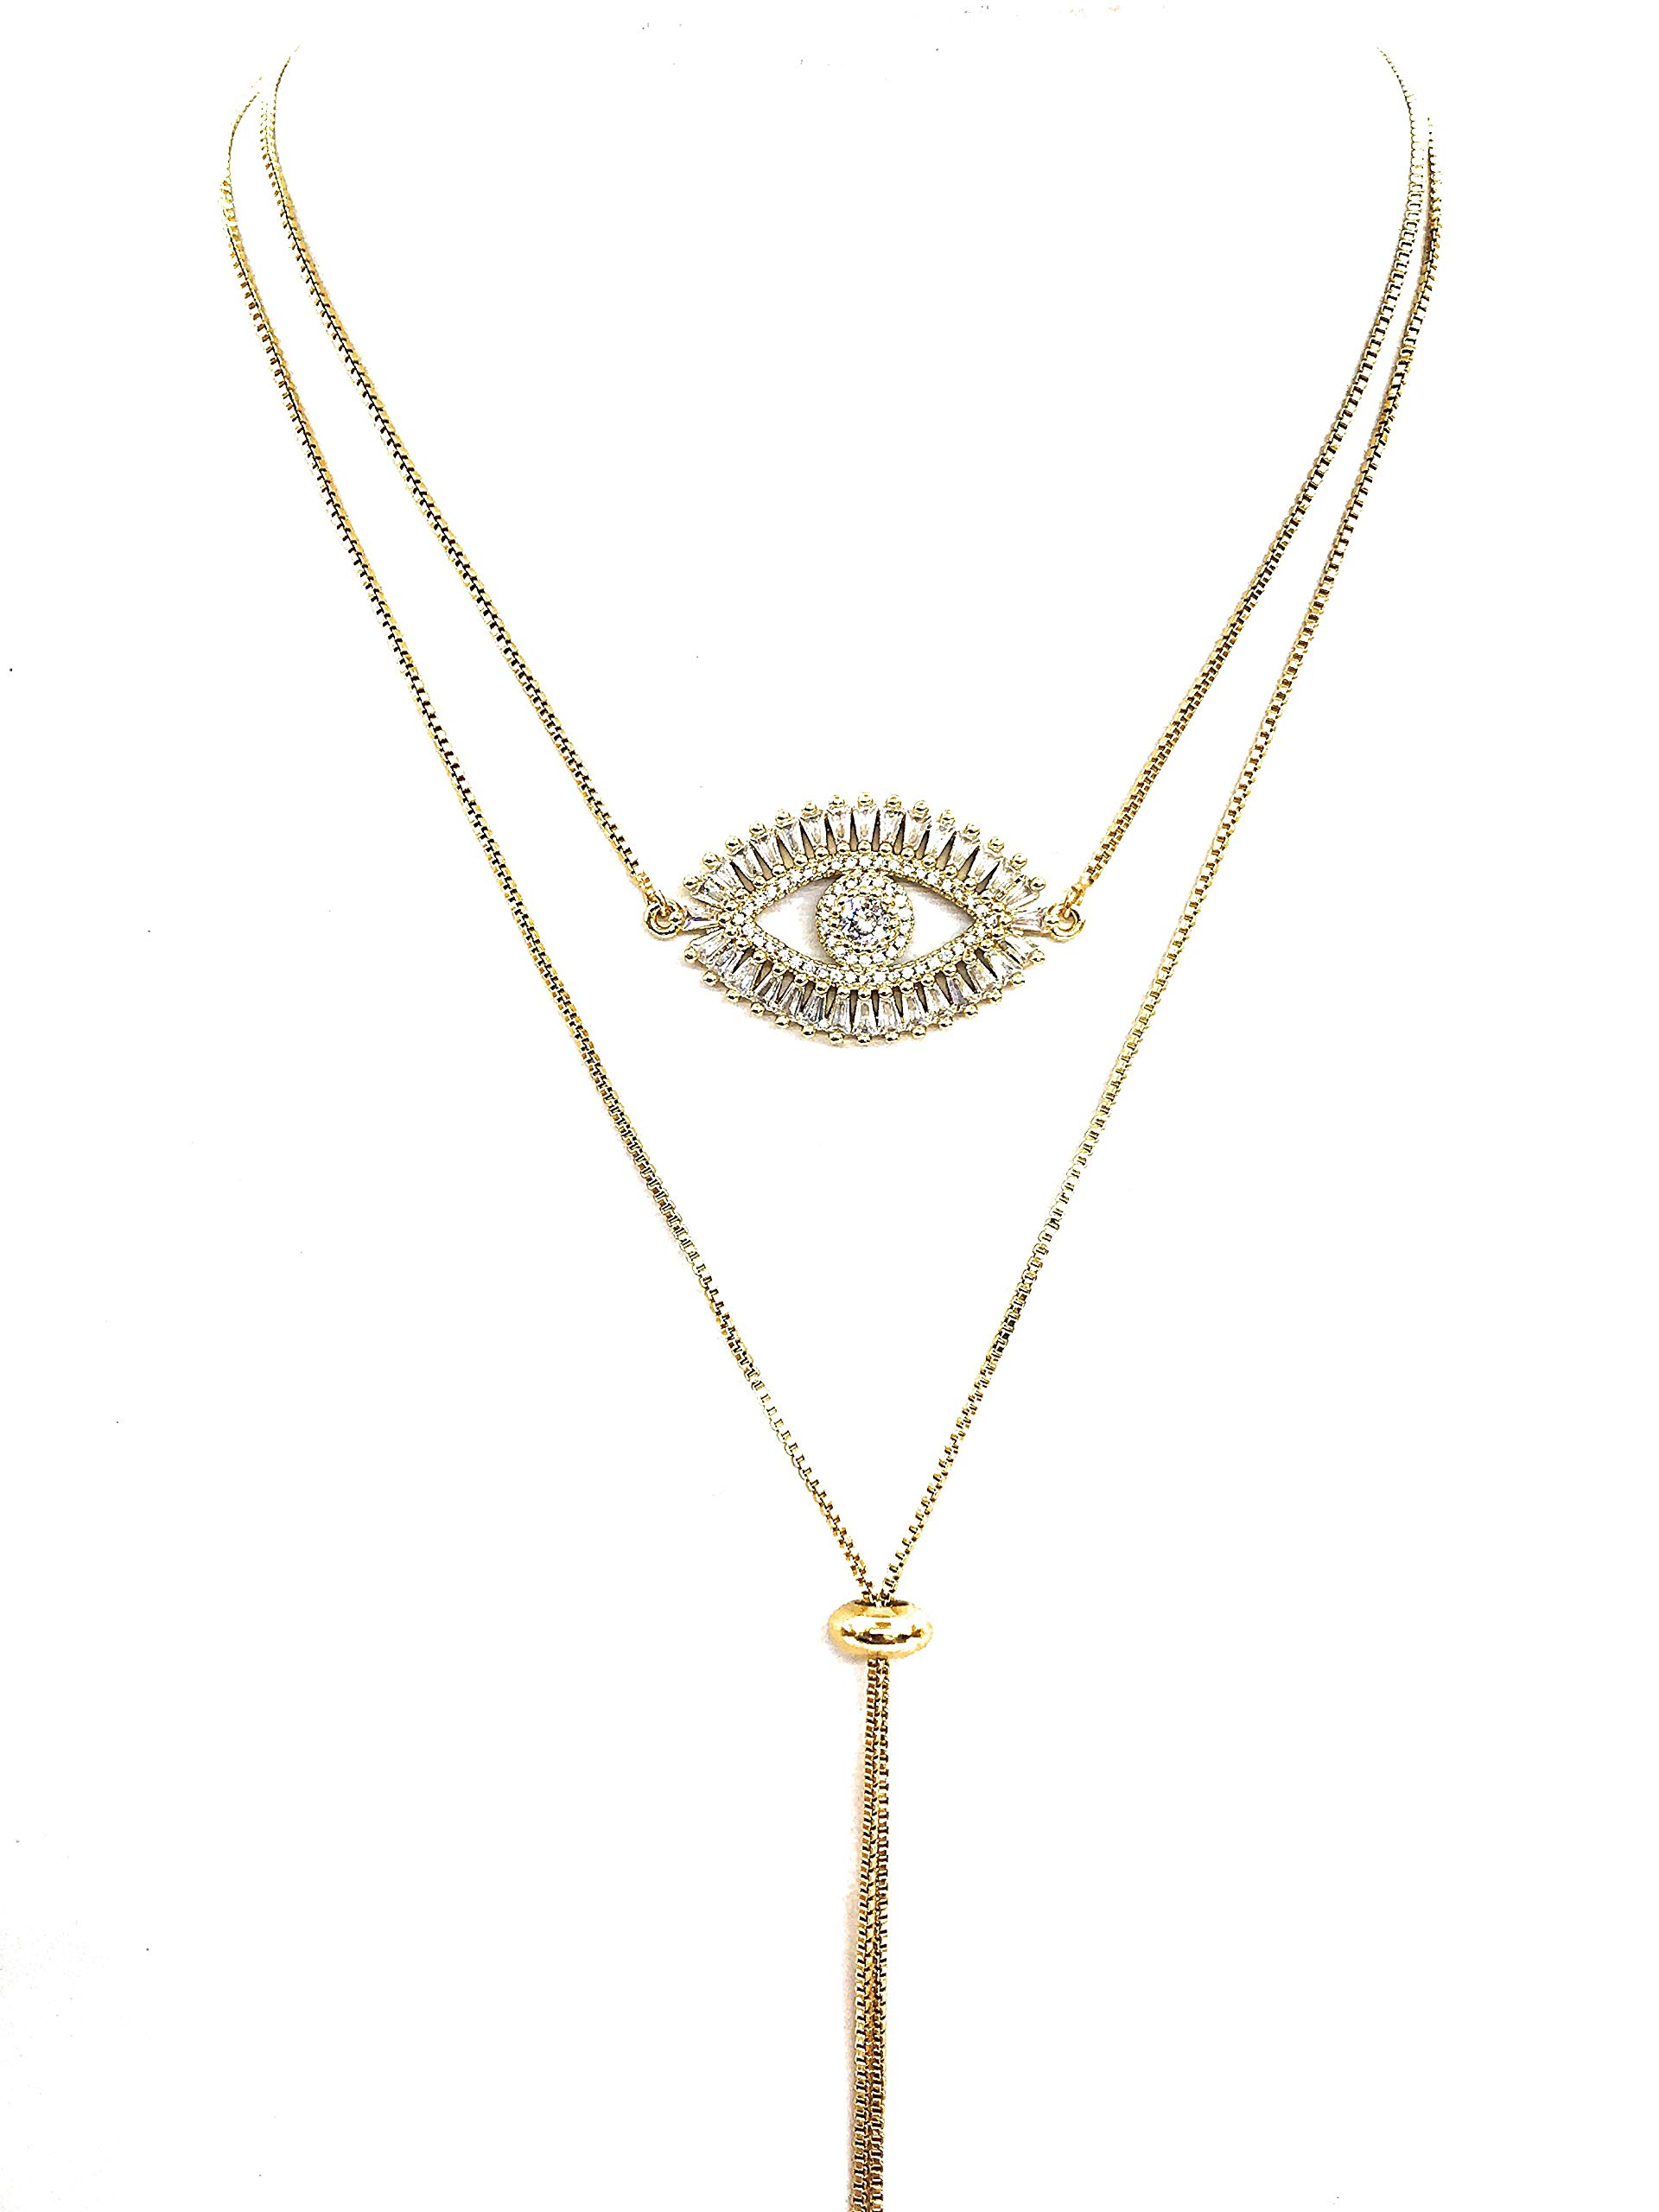 Gold Evil Eye Lariat Necklace for Women 18K Gold Plated Sliding Adjustable Chain Choker Jewelry by LESLIE BOULES